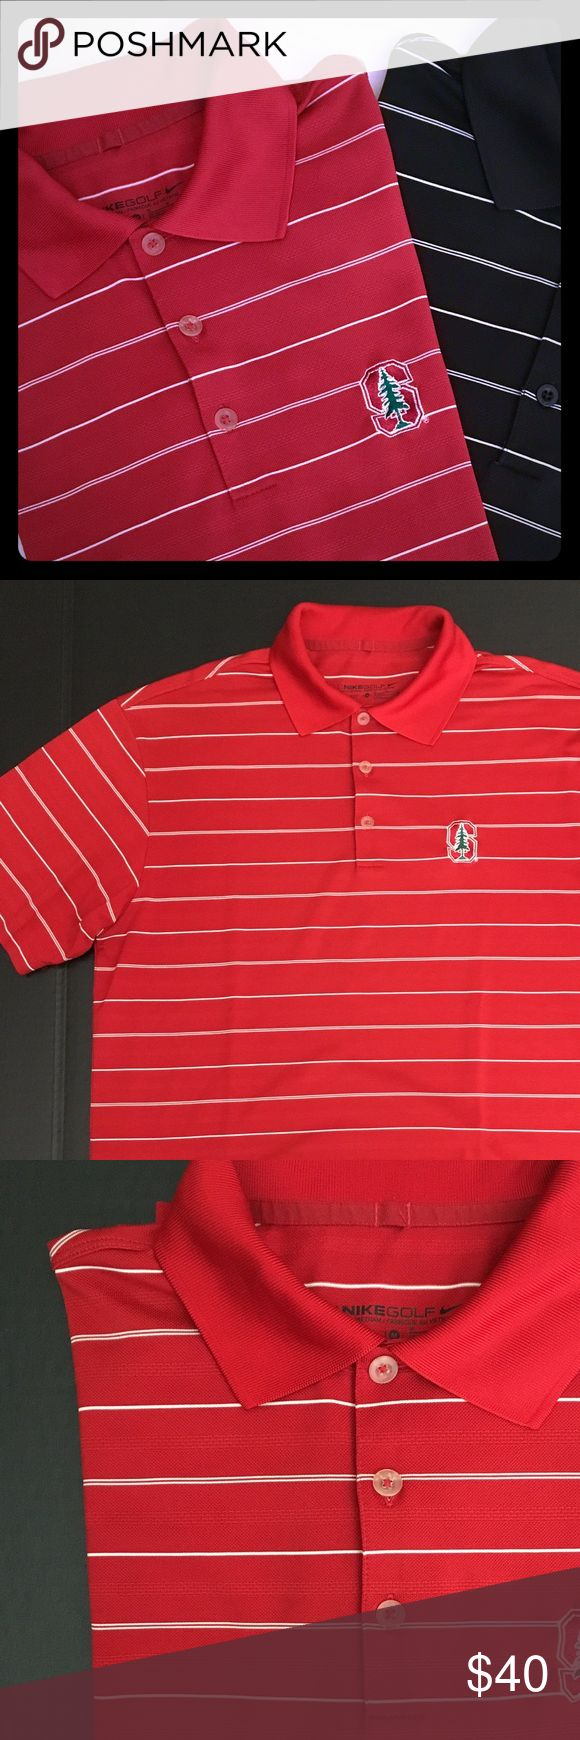 Set -Stanford Nike golf & plain Nike polo Set of two Men's Nike golf polo shirts. Red shirt has Stanford logo and white stripes. Black shirt is plain Nike golf polo with white stripes. Size Medium. In excellent condition. Shirts Polos